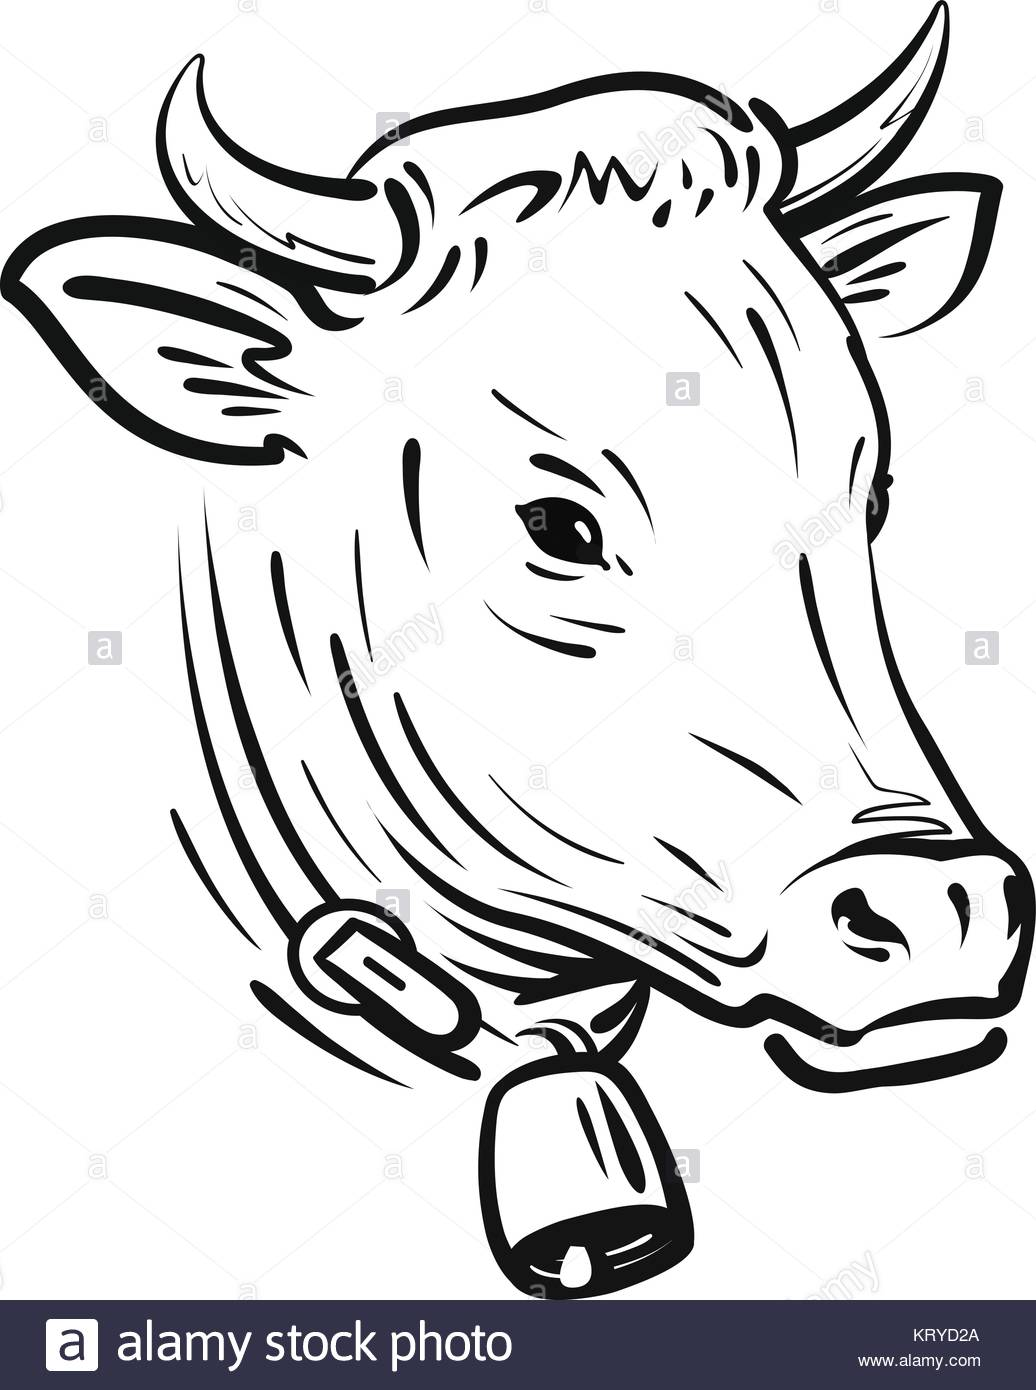 1036x1390 Cow With Bell, Sketch. Farm Animal, Vector Illustration Stock